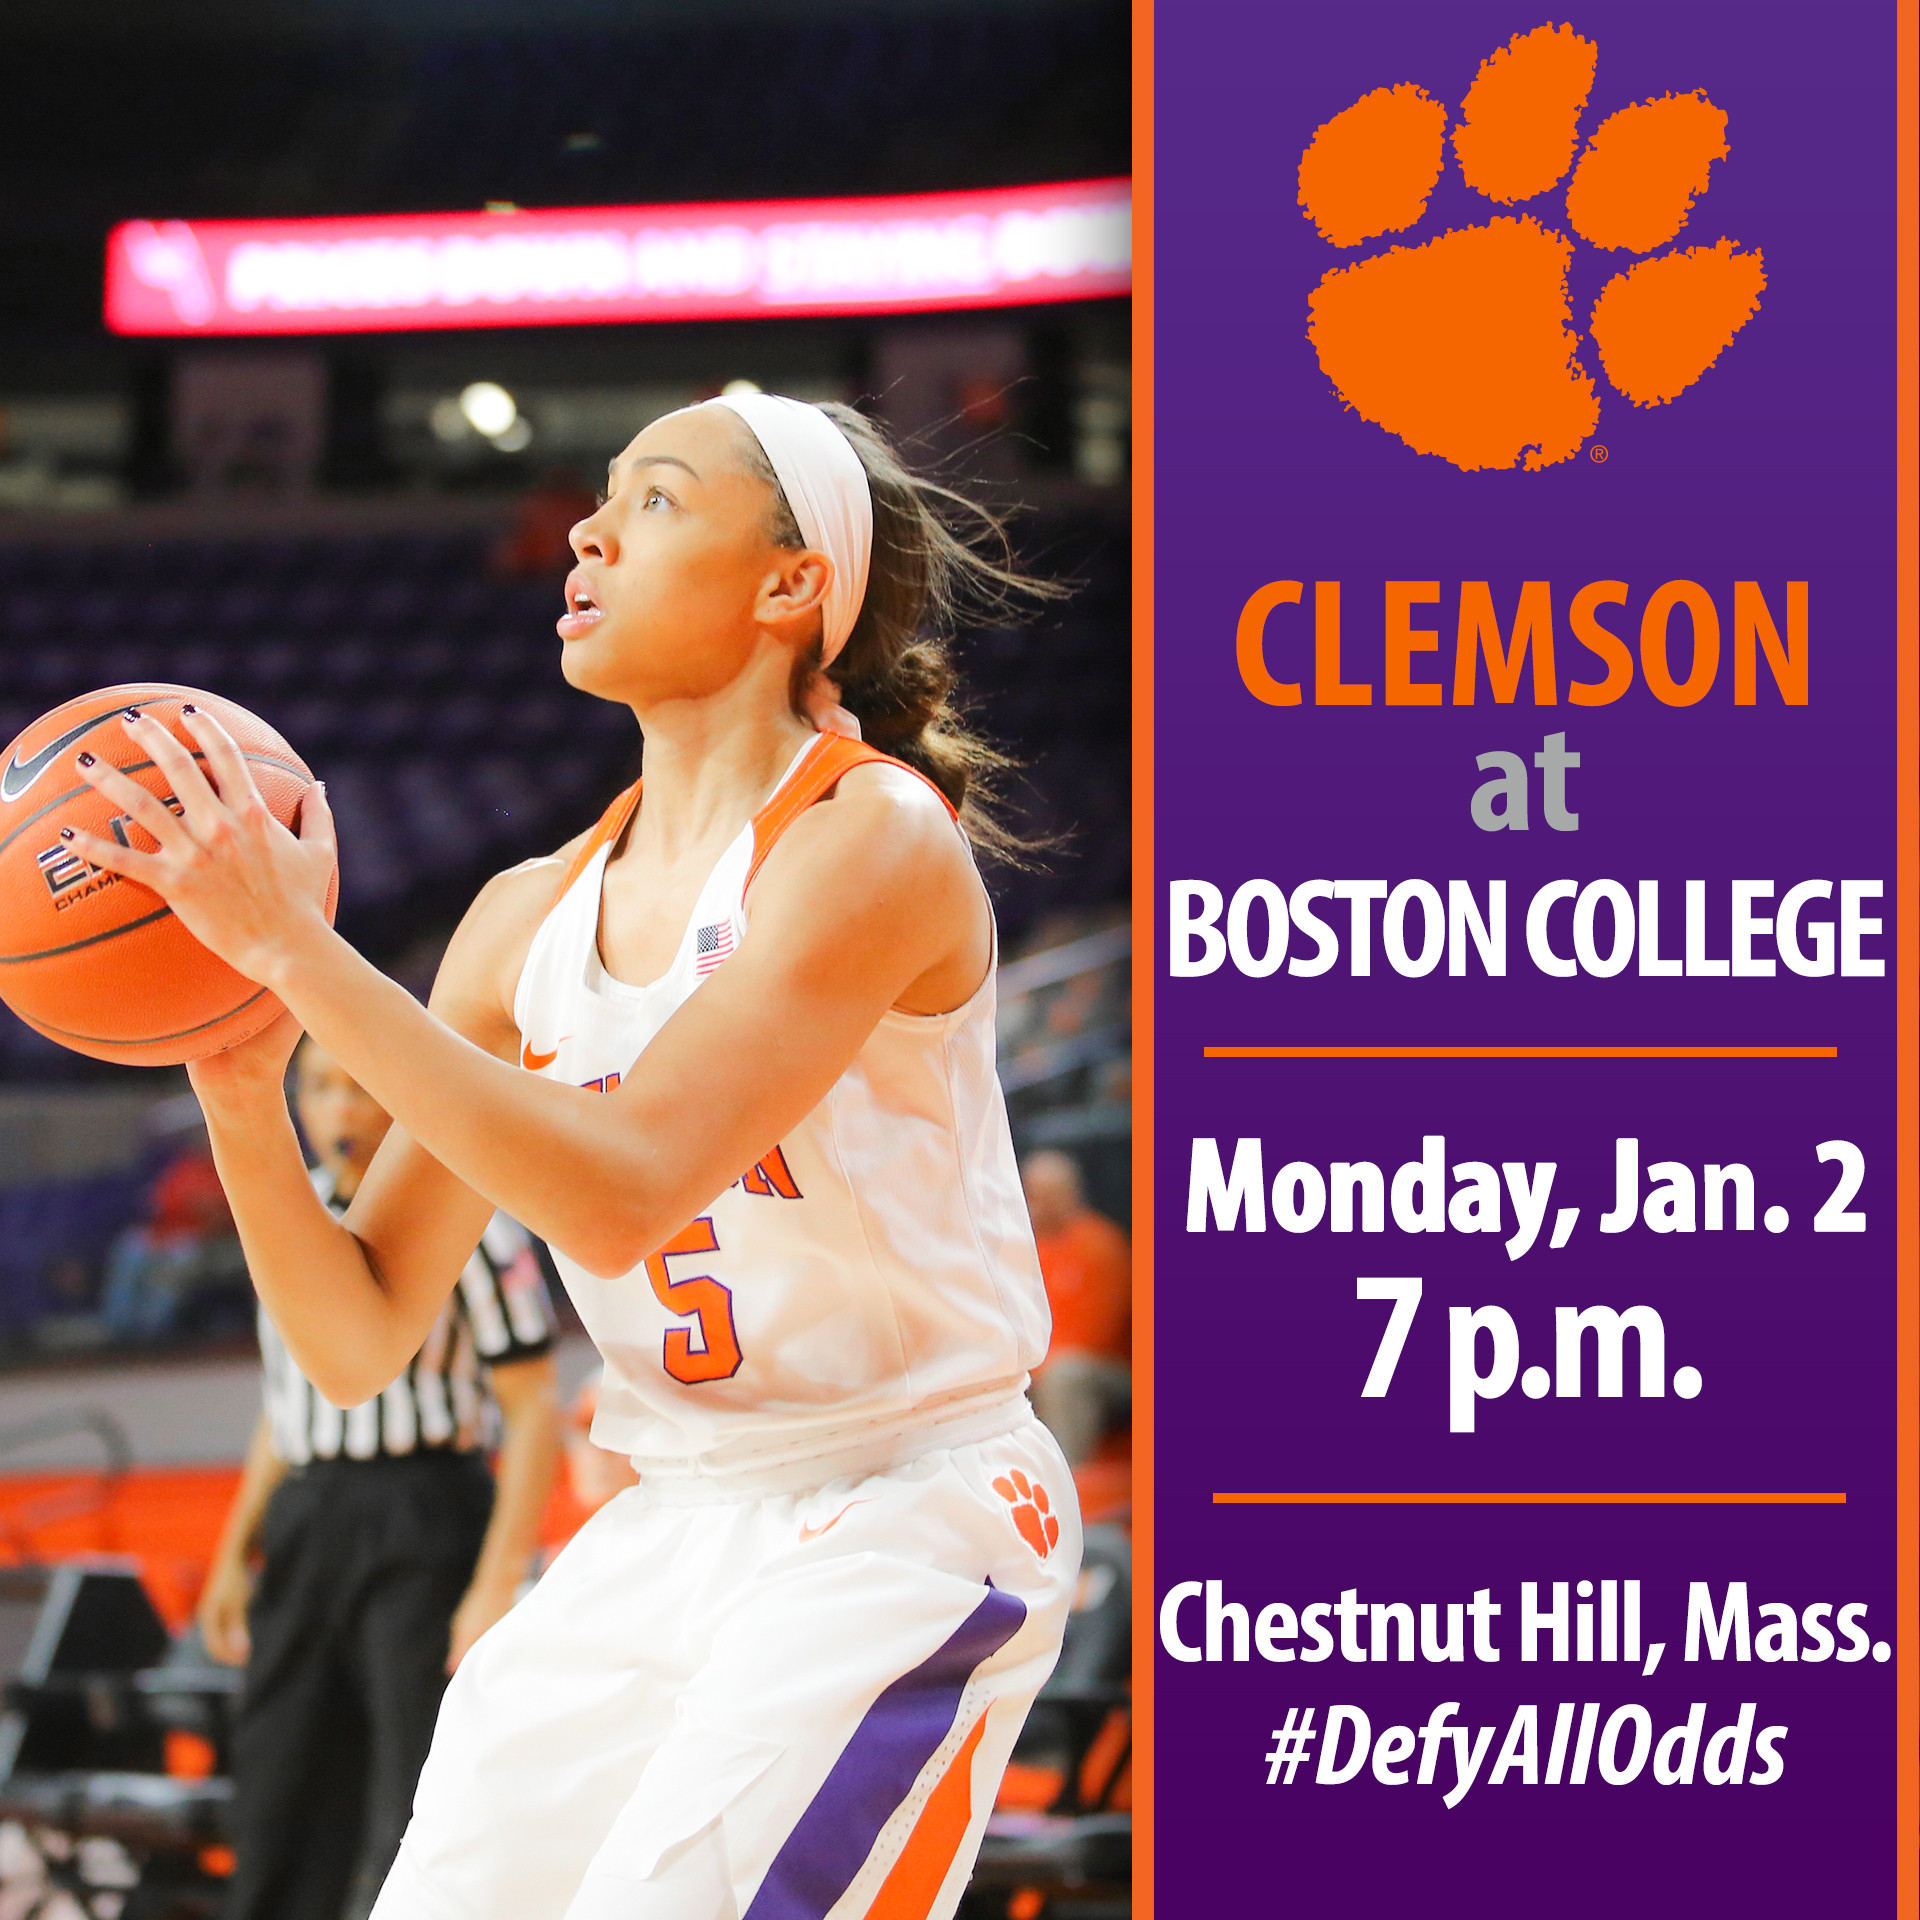 Clemson Travels to Chestnut Hill, Mass. for ACC Opener Monday